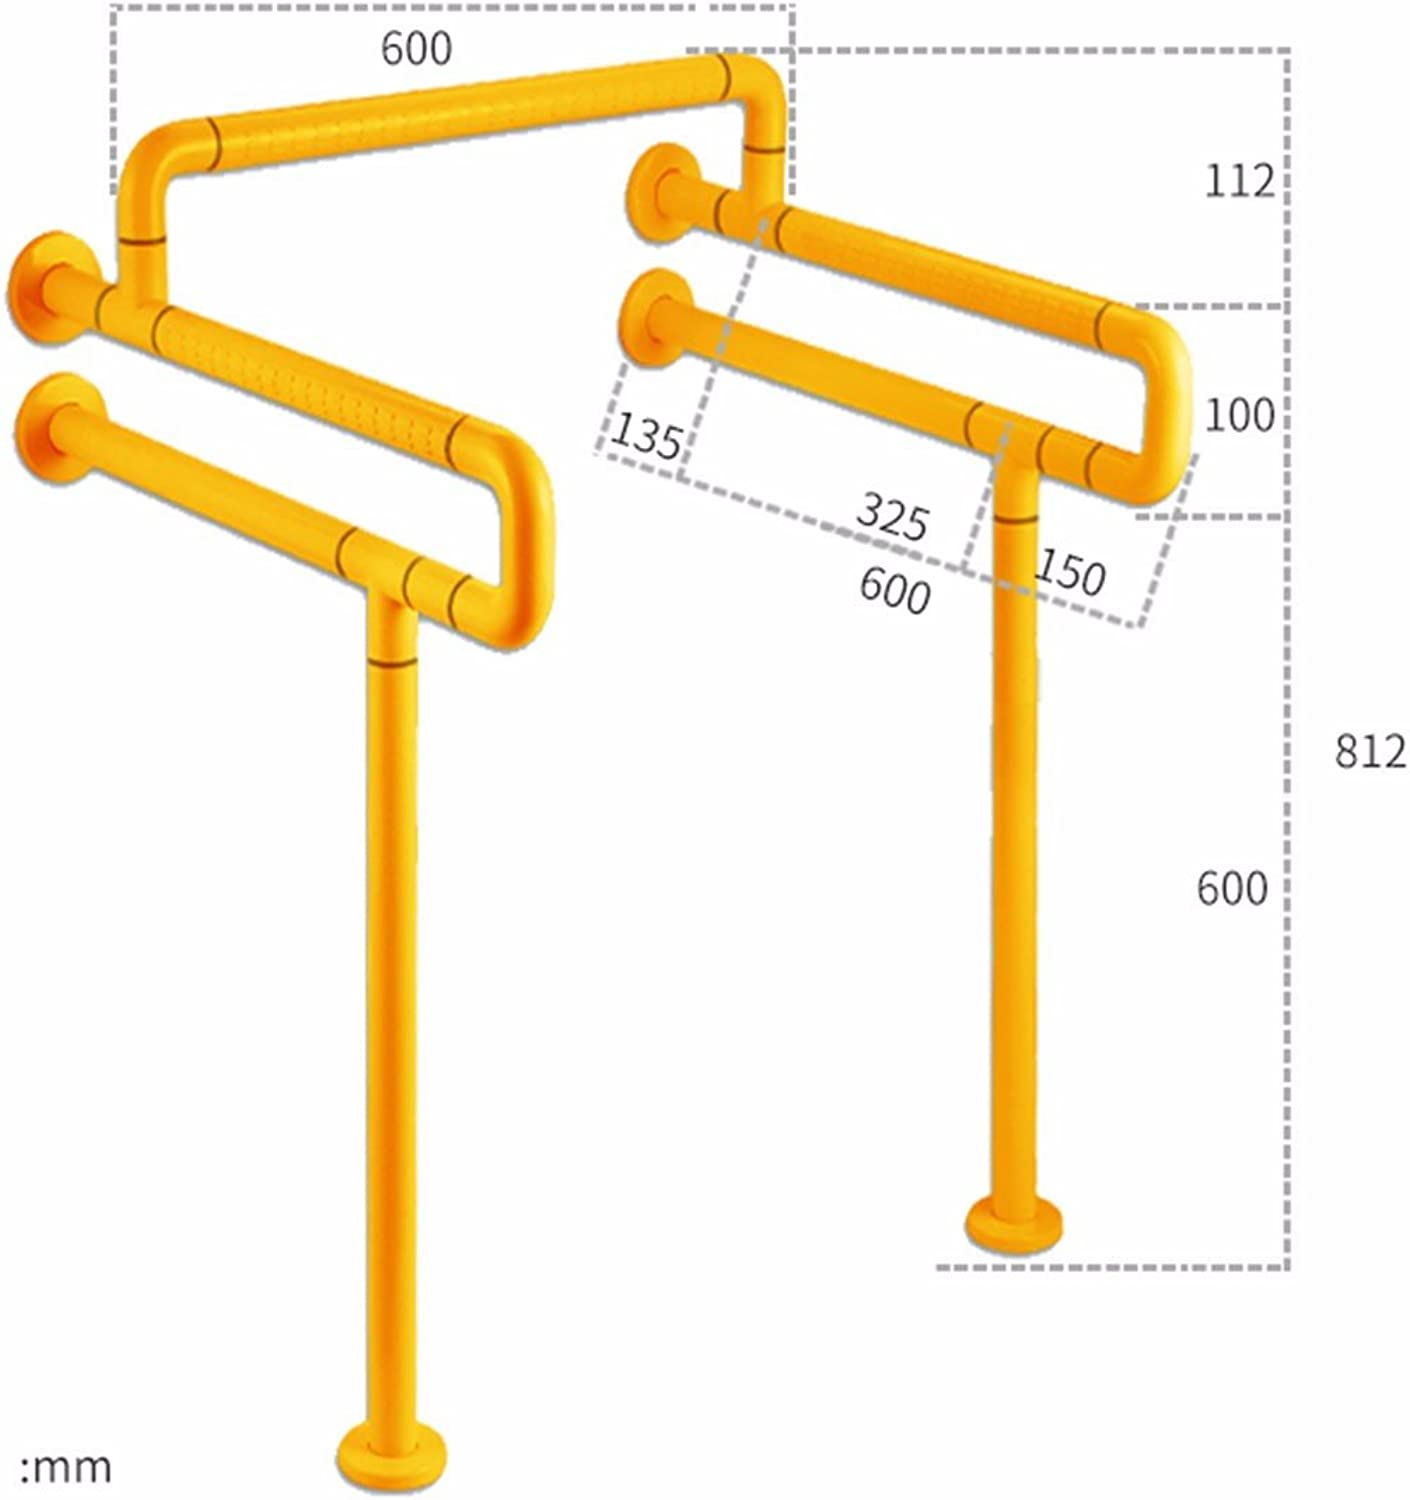 CJSHVR-Toilet, Toilet, Toilet, Barrier Free Lift, Antiskid Safety Handrails for Toilet,A,Yellow